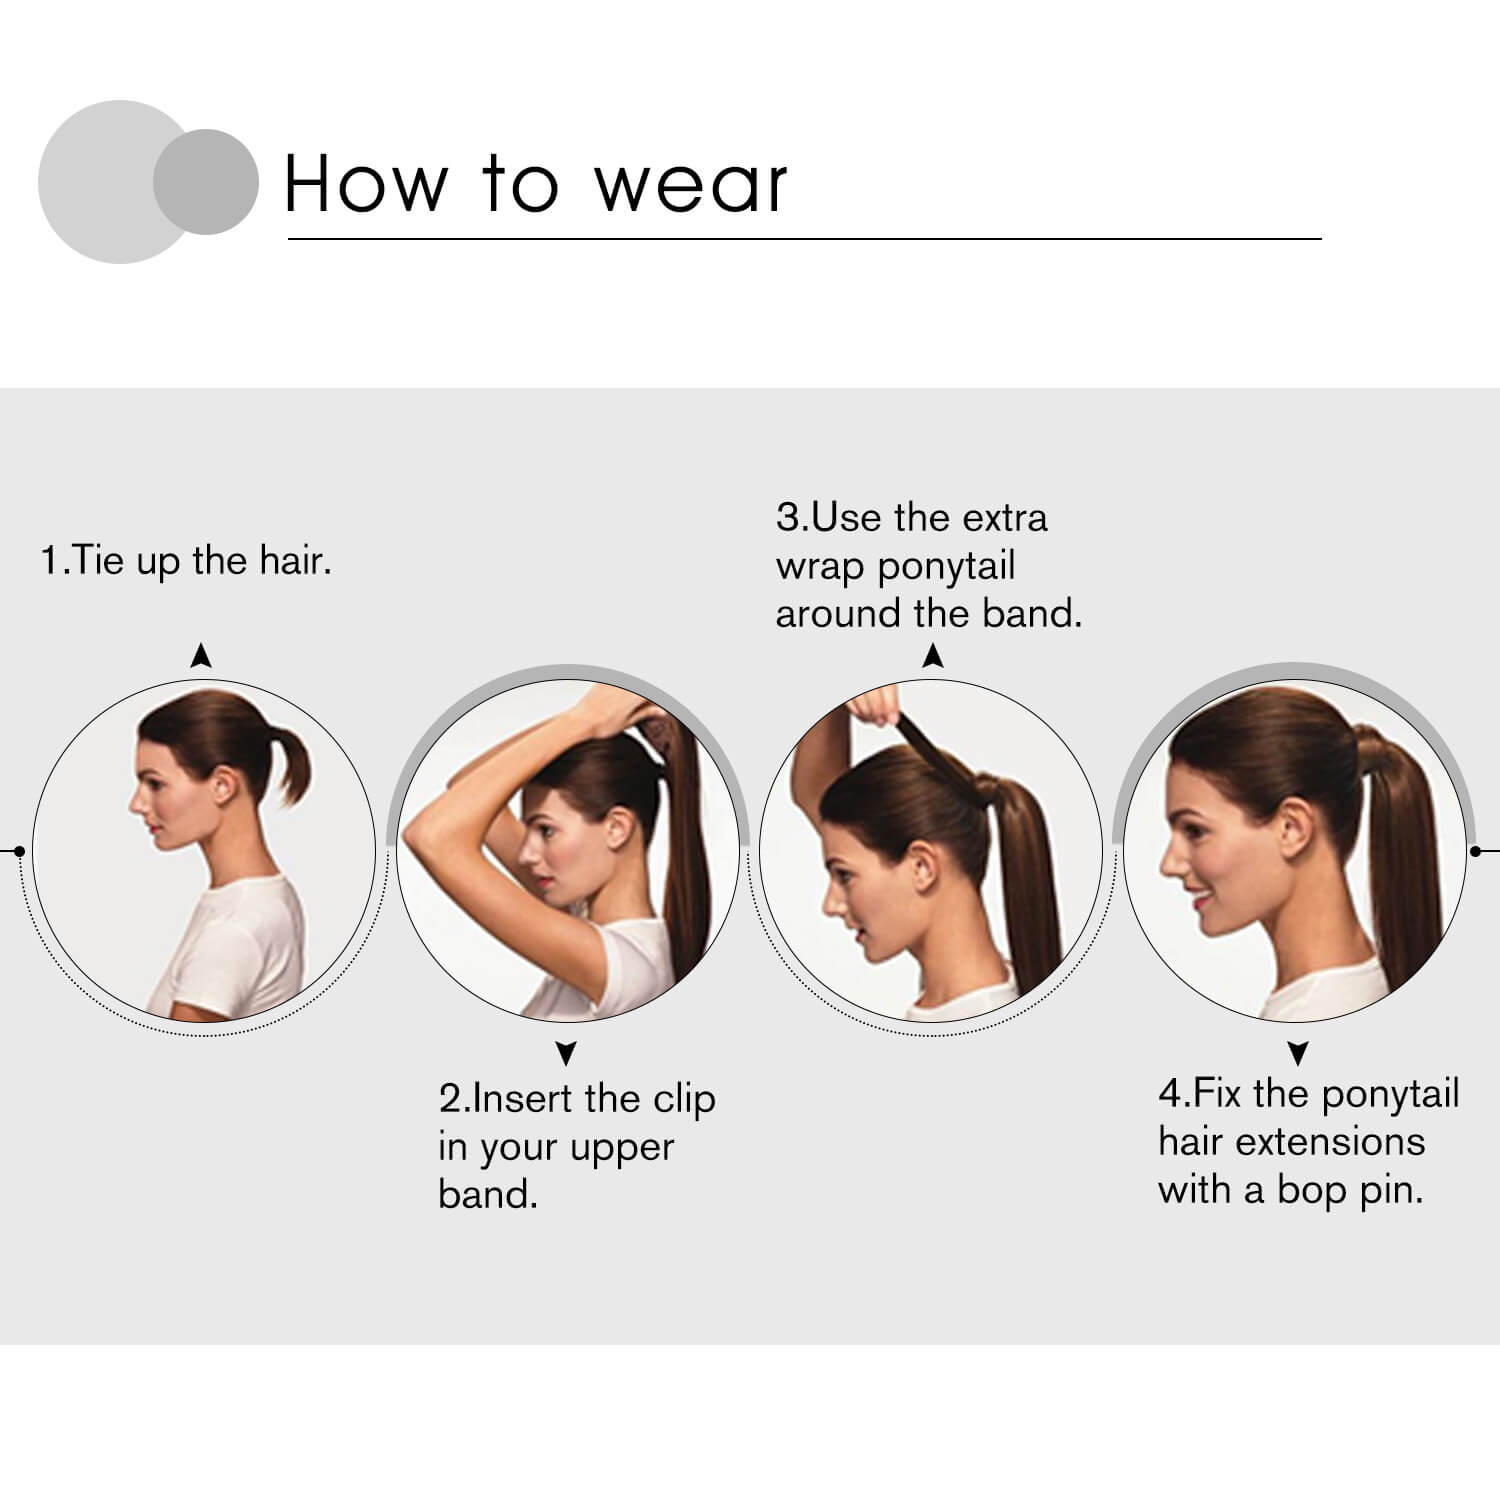 Method of applying ponytail hair extensions